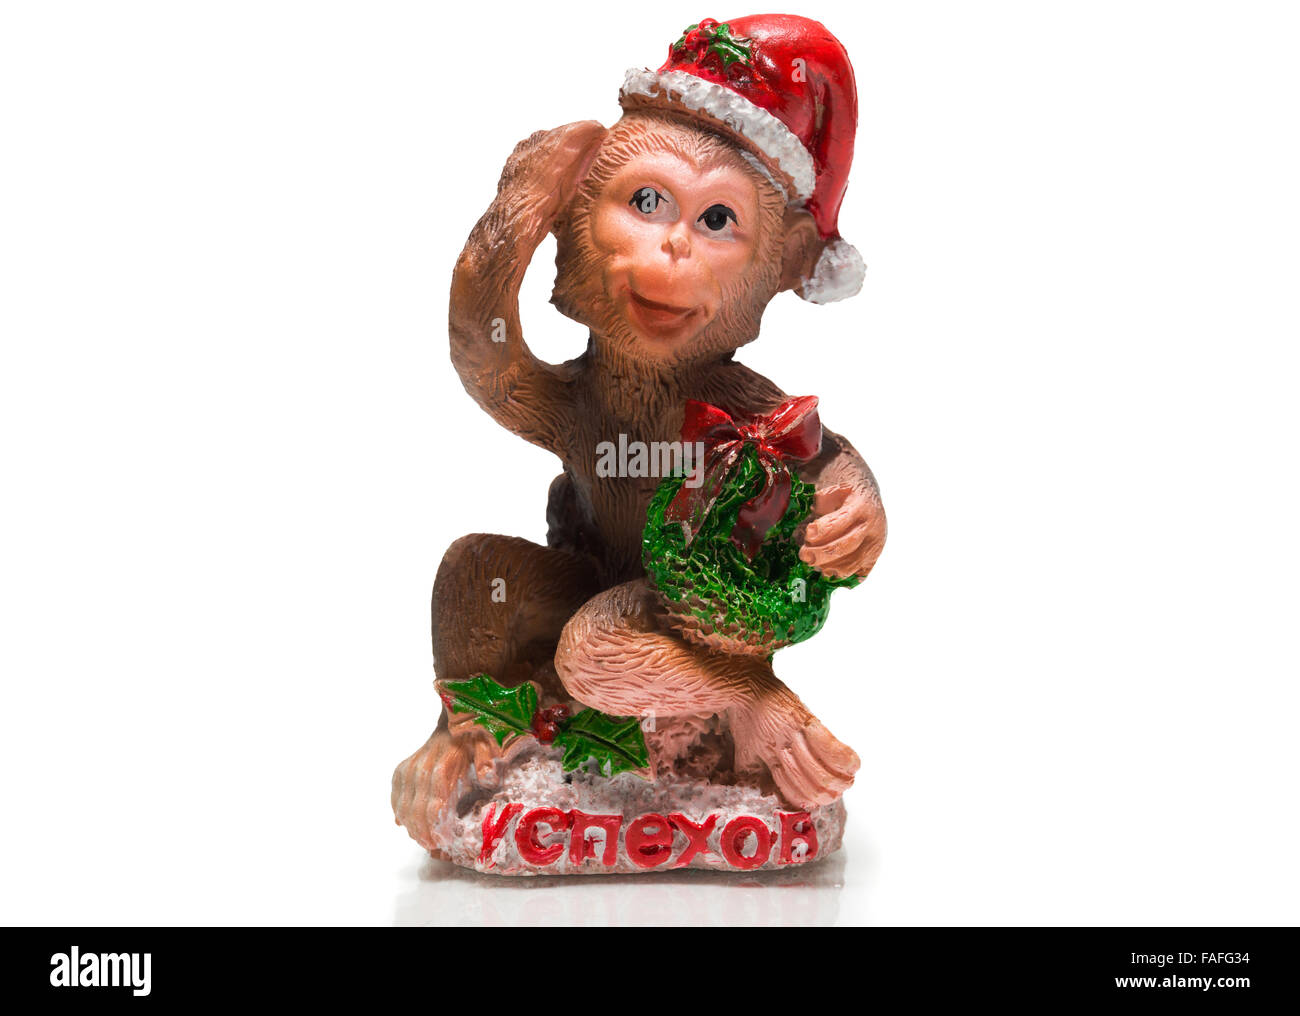 Monkey Symbol Stock Photos Monkey Symbol Stock Images Alamy